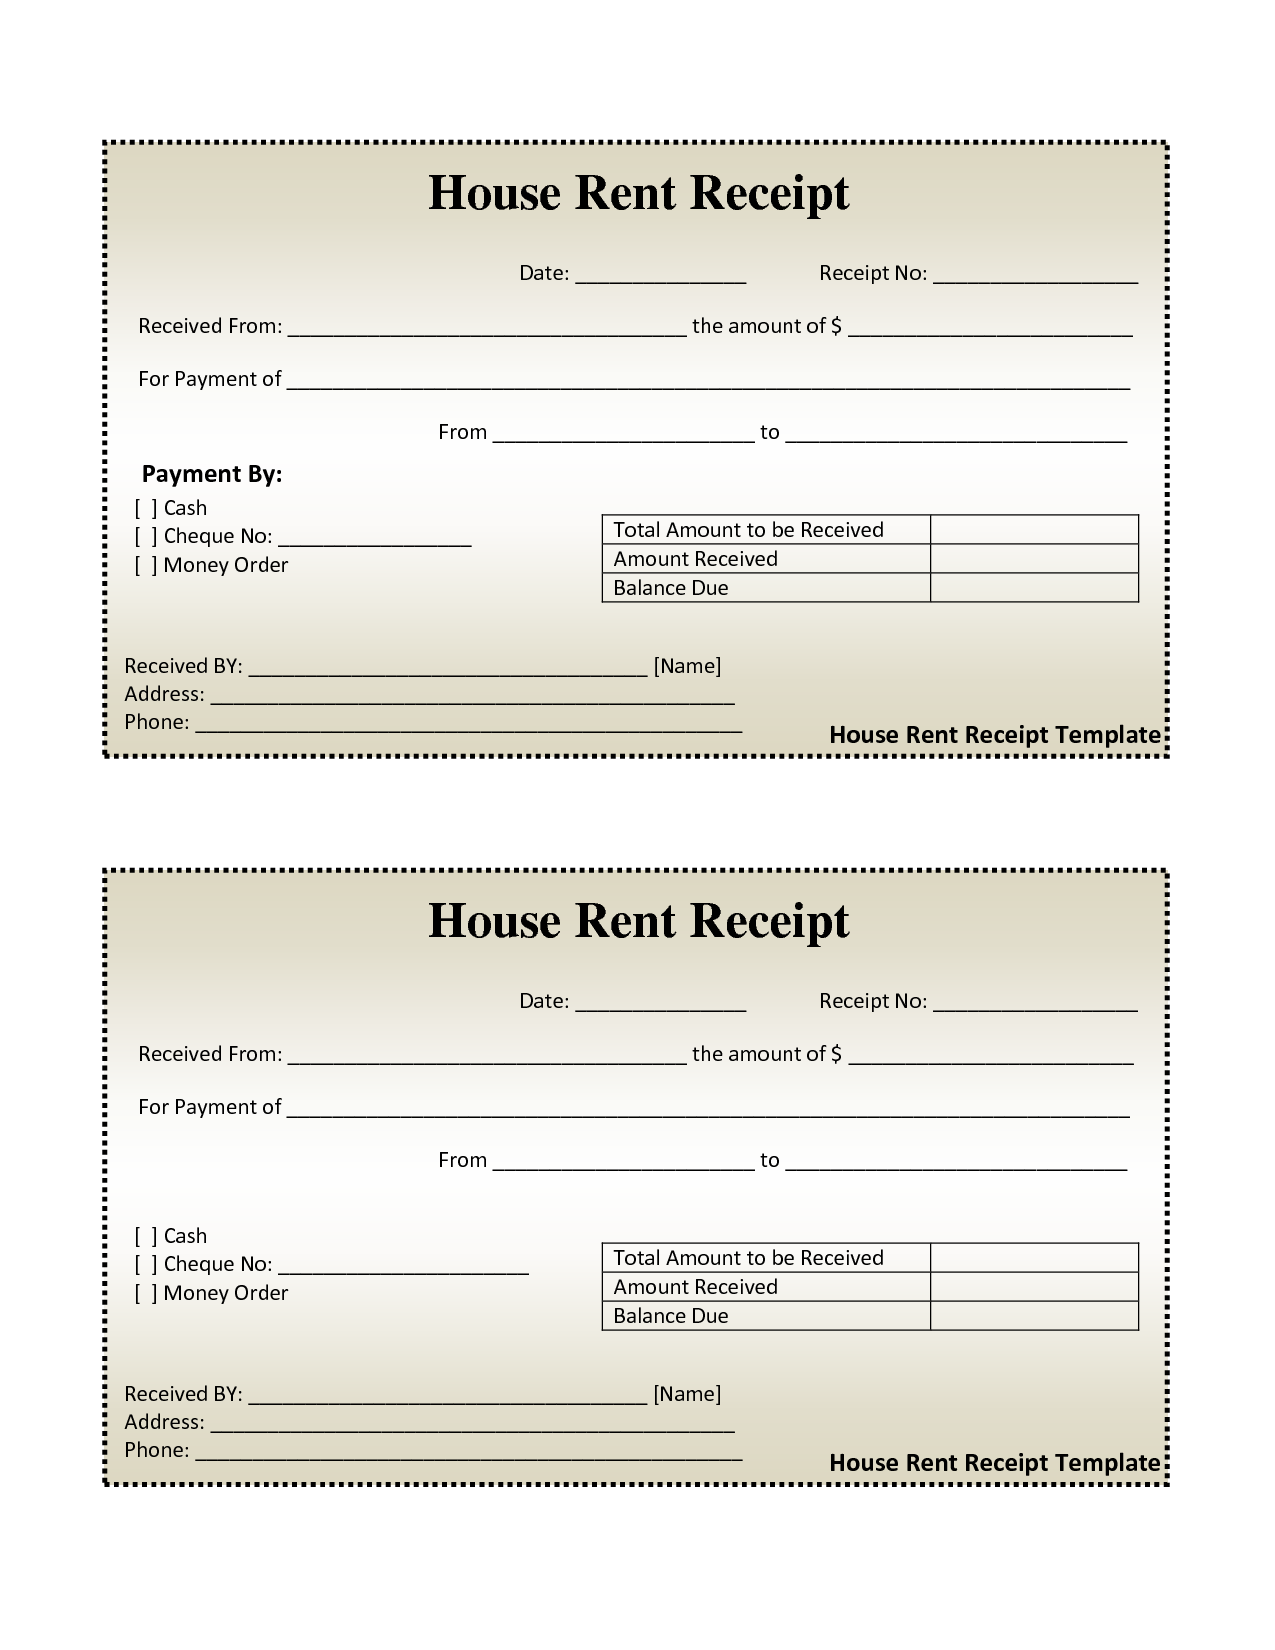 free house rental invoice House Rent Receipt Template DOC